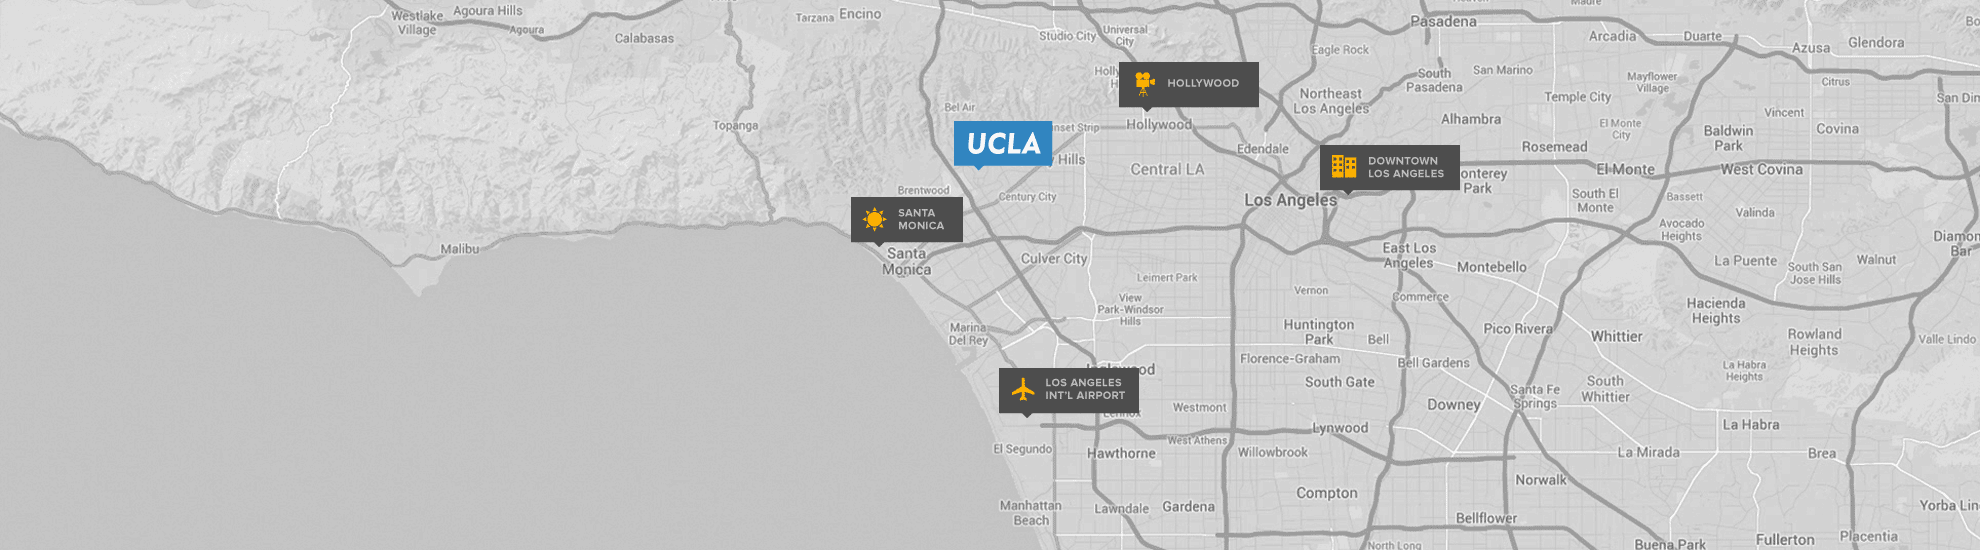 map of ucla luskin conference center and hotel